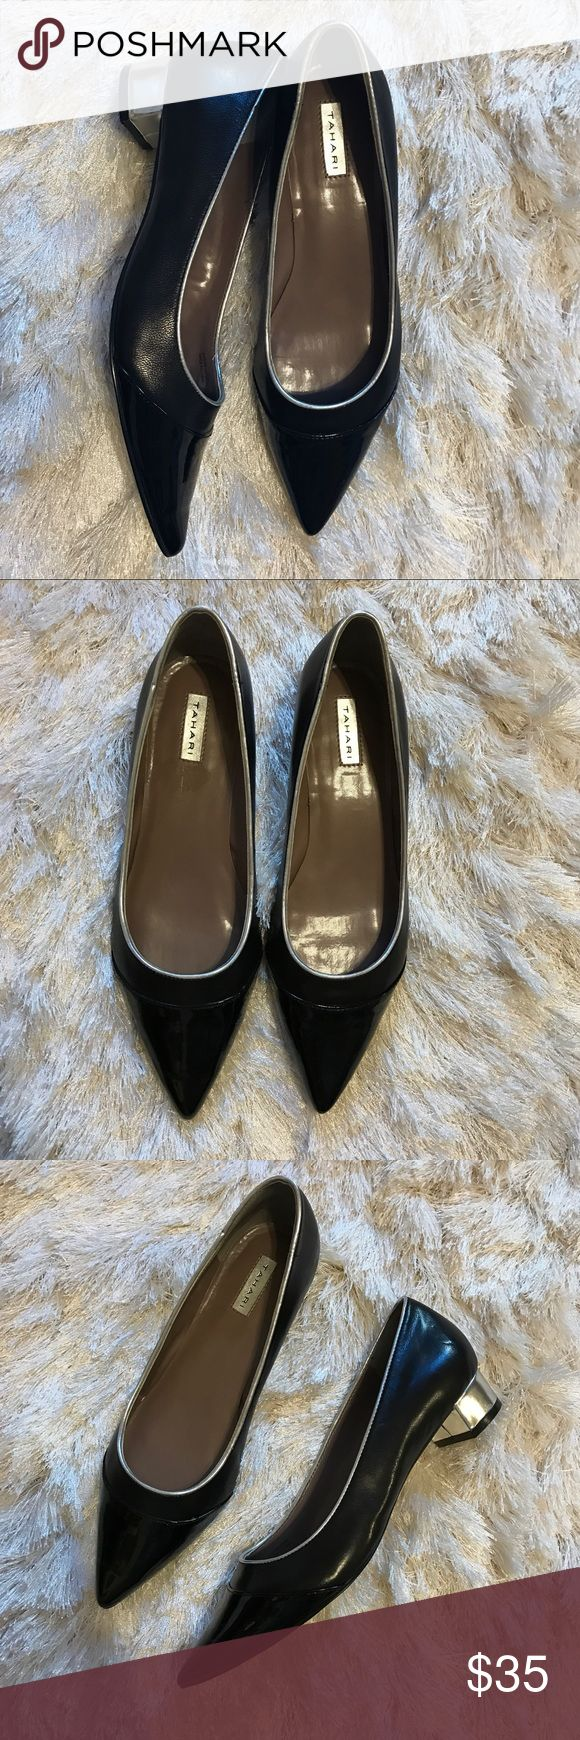 """Leather Pointed Loafers Leather pointed """"KAT"""" flats with an inch metallic heel by Tahari. Never worn and in perfect condition. Tahari Shoes Flats & Loafers"""